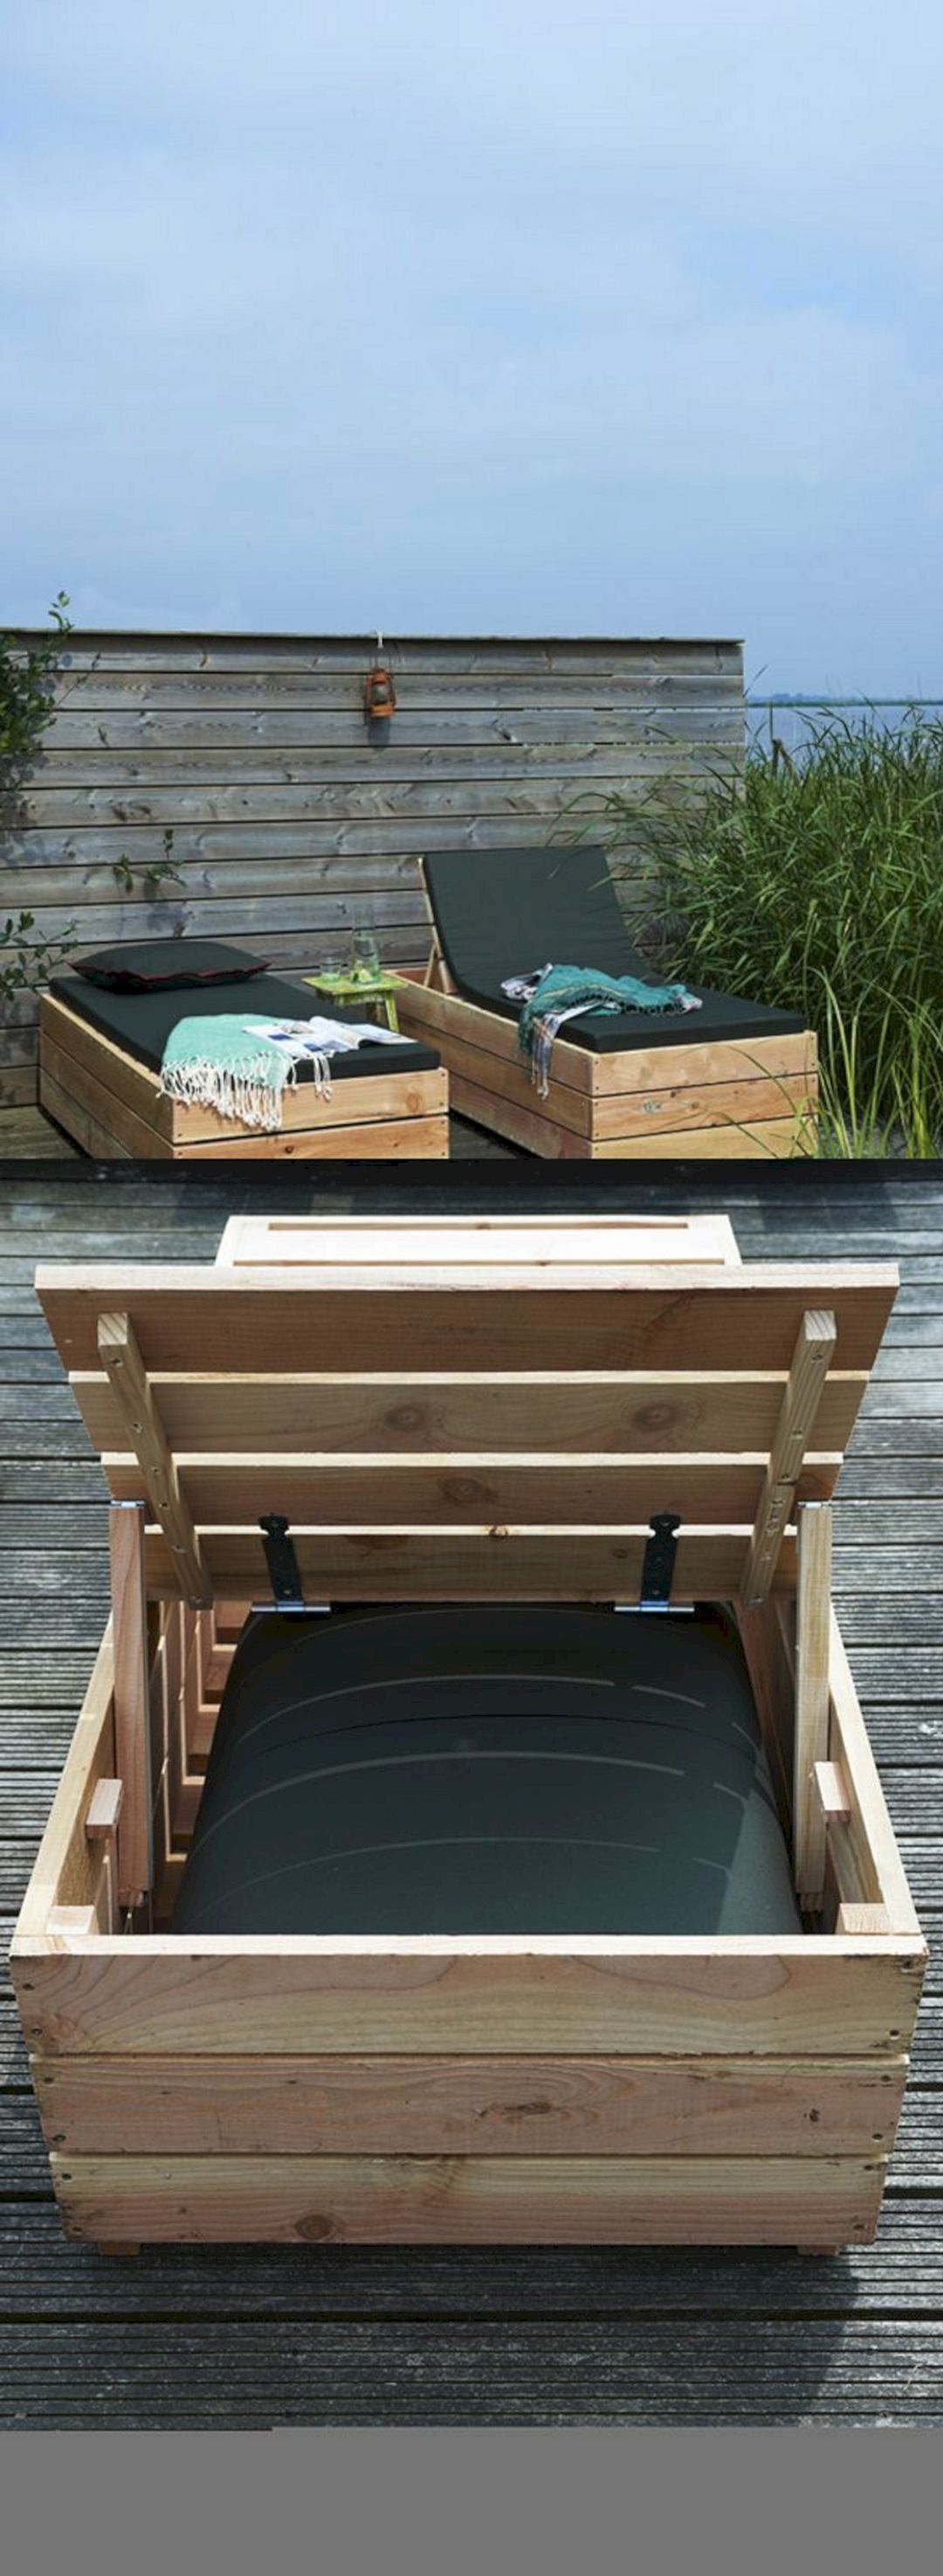 Diy Outdoor Furniture Projects Can Be Very Fun And Easy To Make Your Backyard Look Awesome Many Of Them Are Made From Repurposed